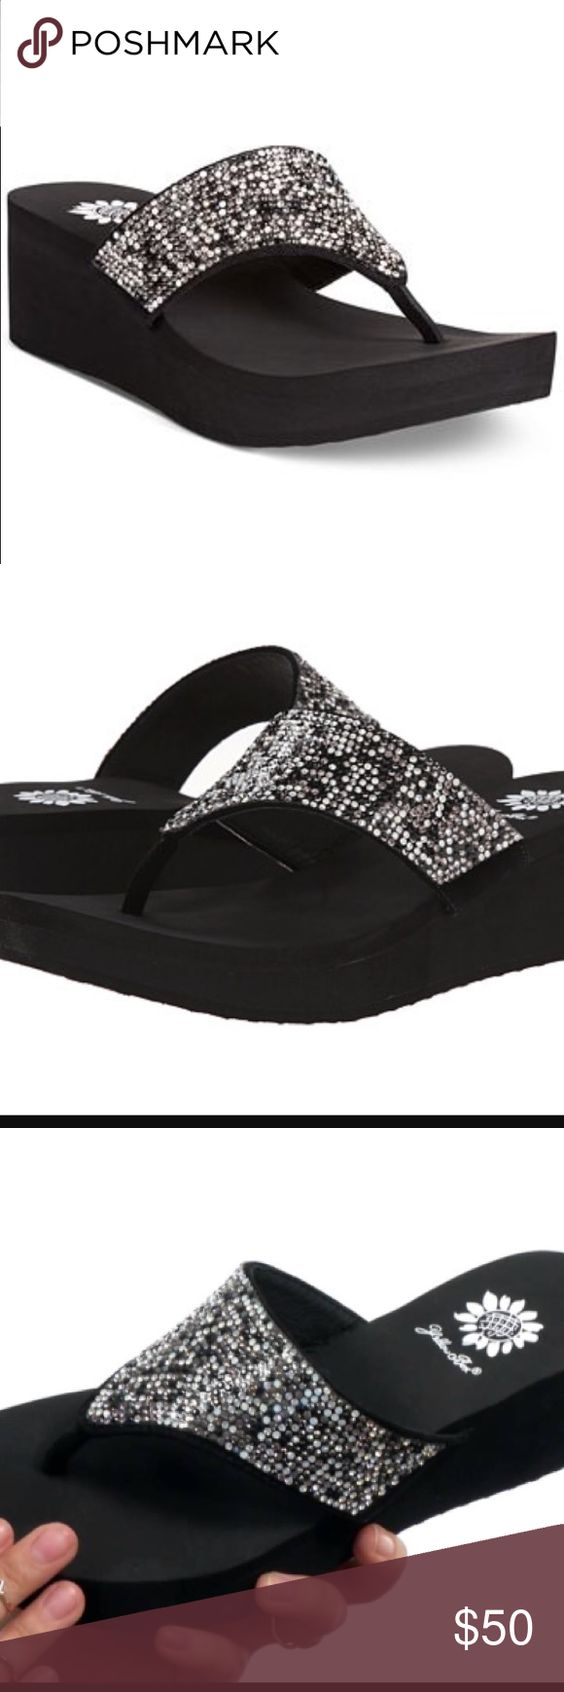 """Yellow Box Reija Wedge Thong Sandals Spice things up with the Reija wedge thong Sandals by Yellowbox. They add sparkle to all your favorite outfits in a way that's easy on your feet. Man-made upper, round open-toe wedge thong sandals, 1/2"""" platform, 2"""" wedge heel, man-made sole. Brand new, never worn, in box. Yellow Box Shoes Sandals"""